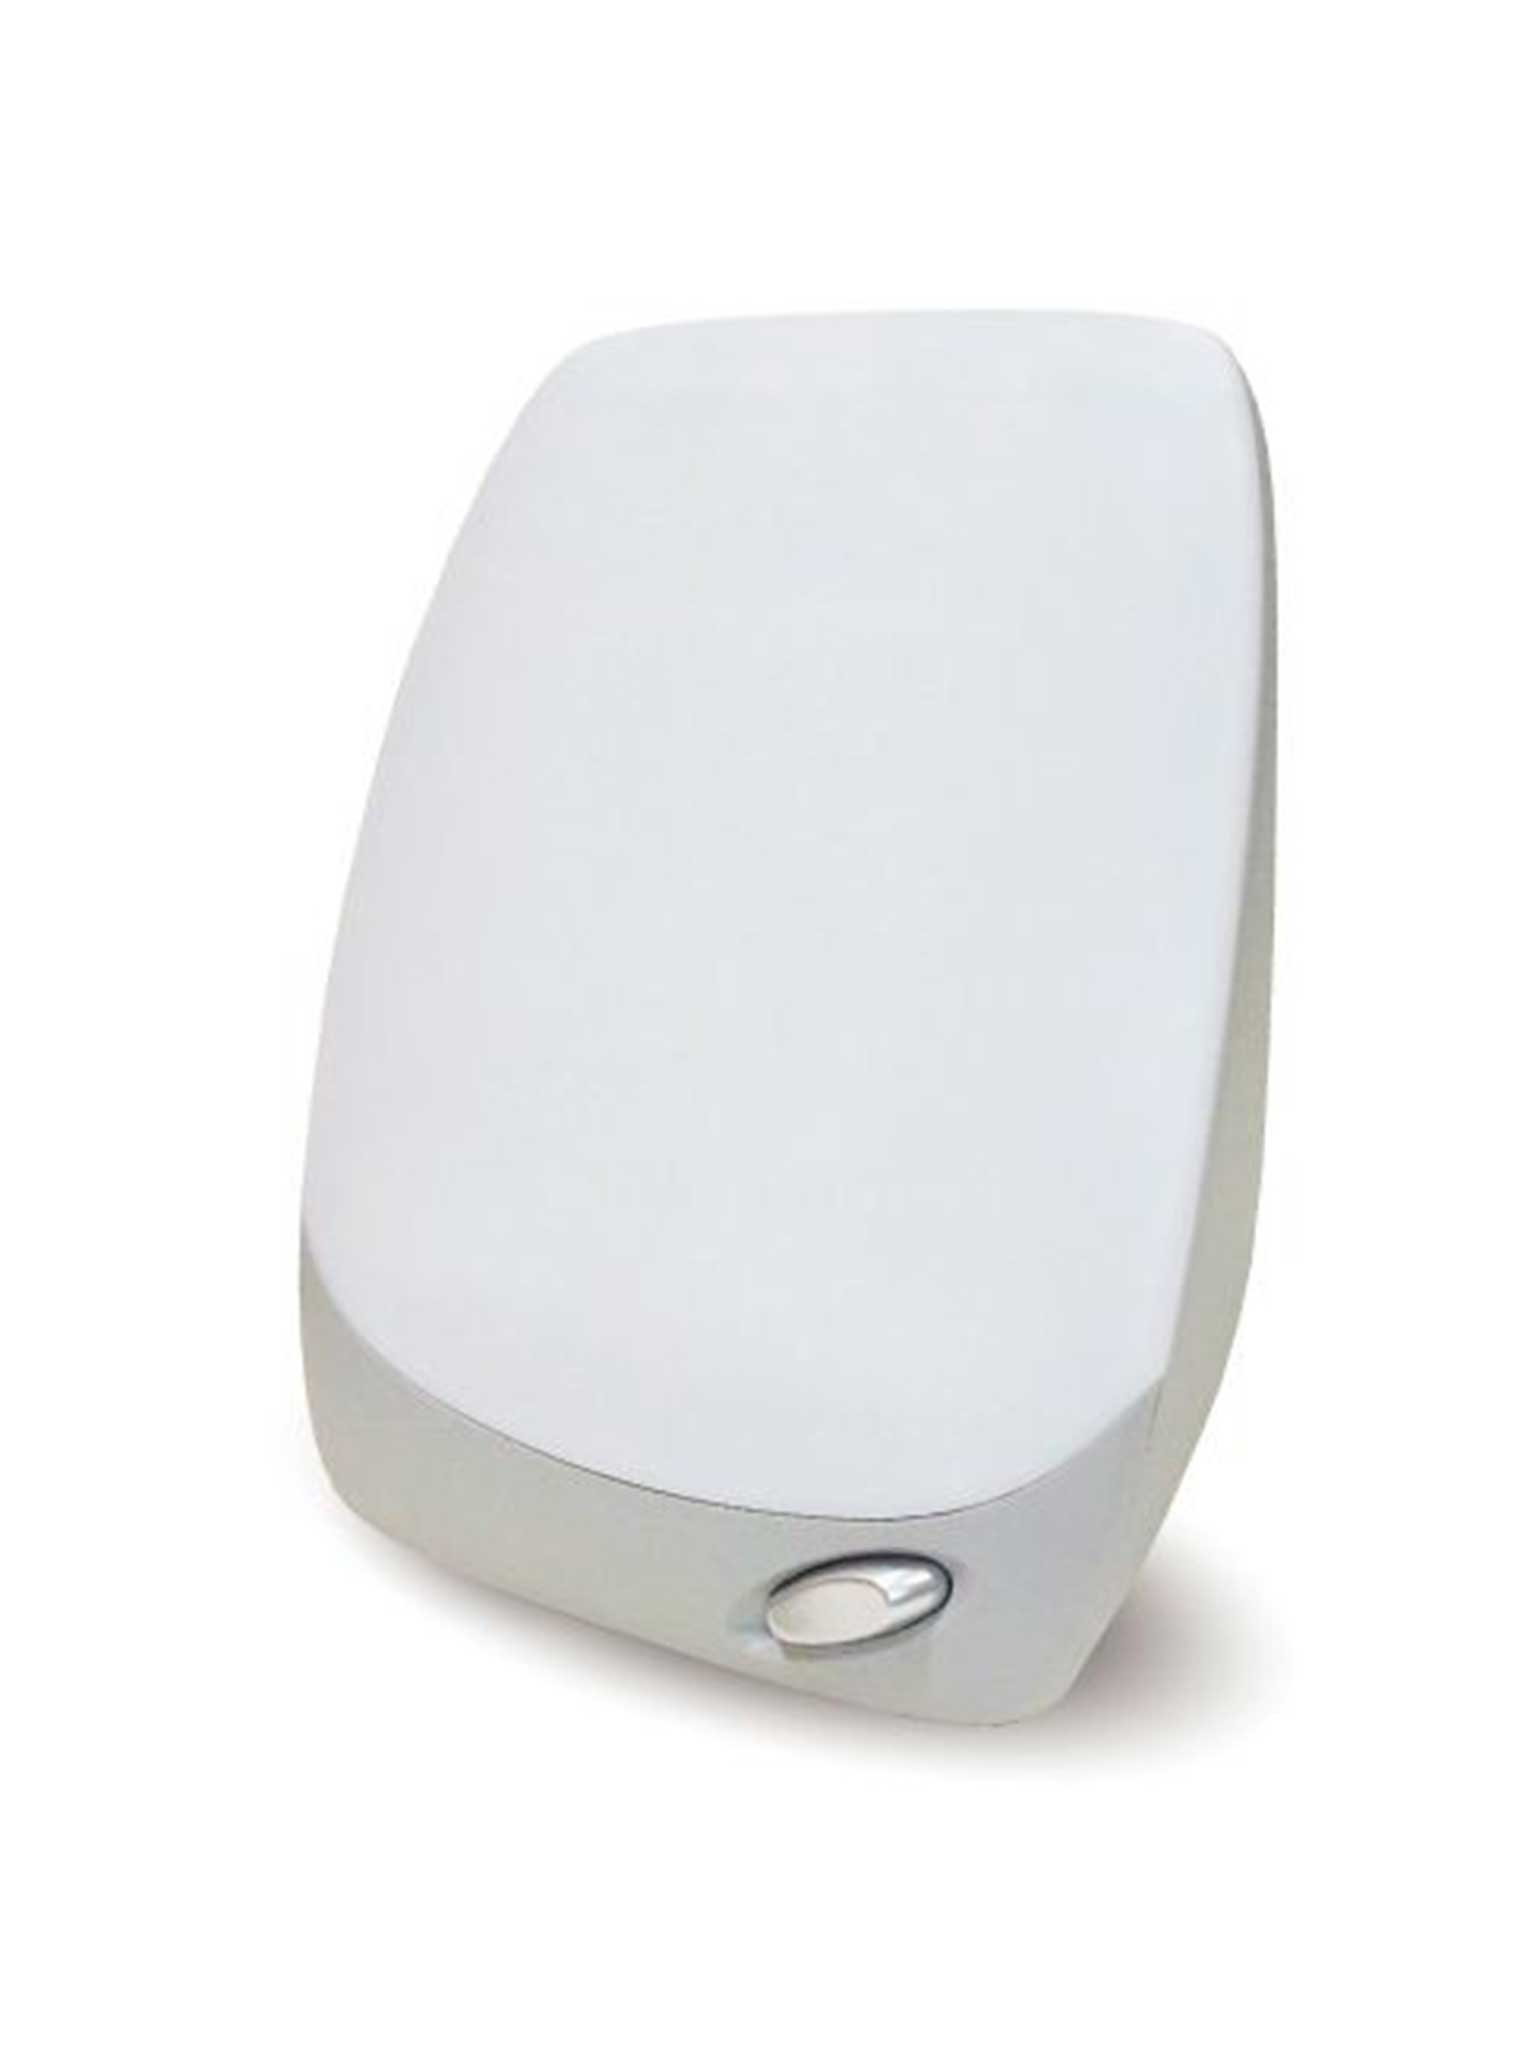 10 Best Sad Lamps The Independent 2 Way Speaker Switch Maplin